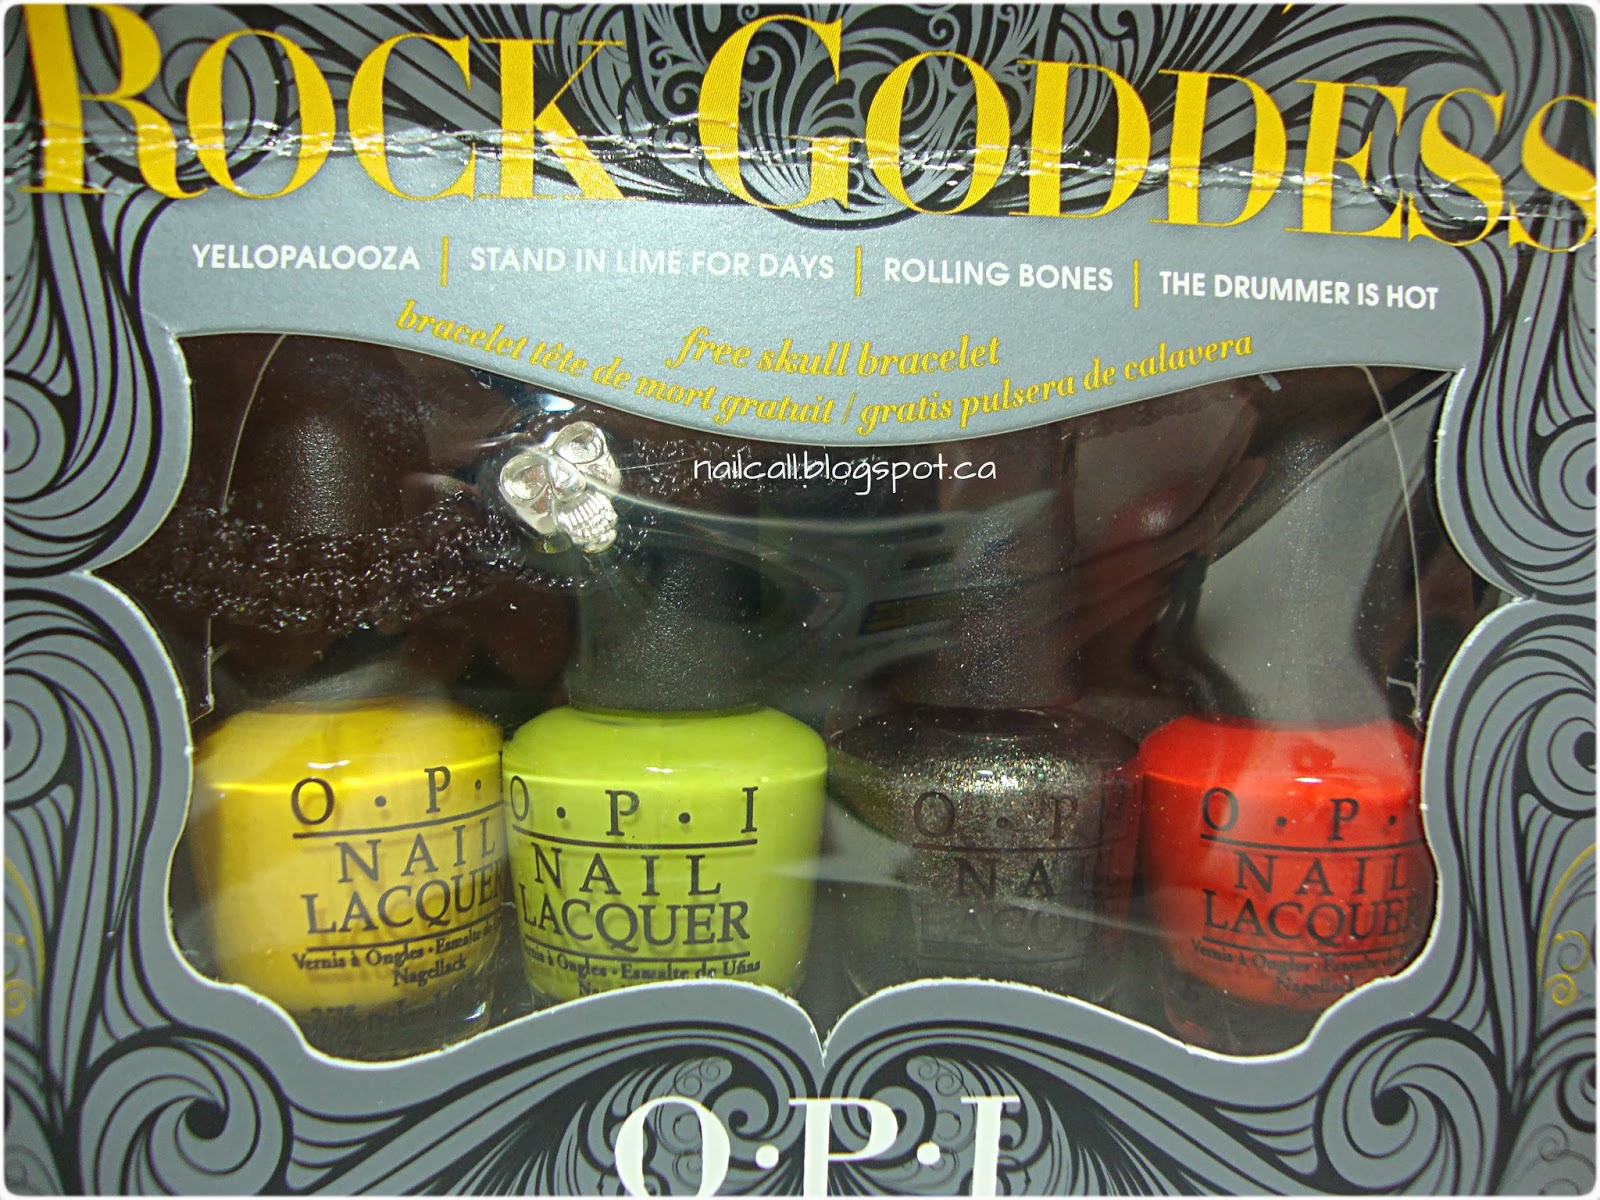 OPI Rock Goddess box set